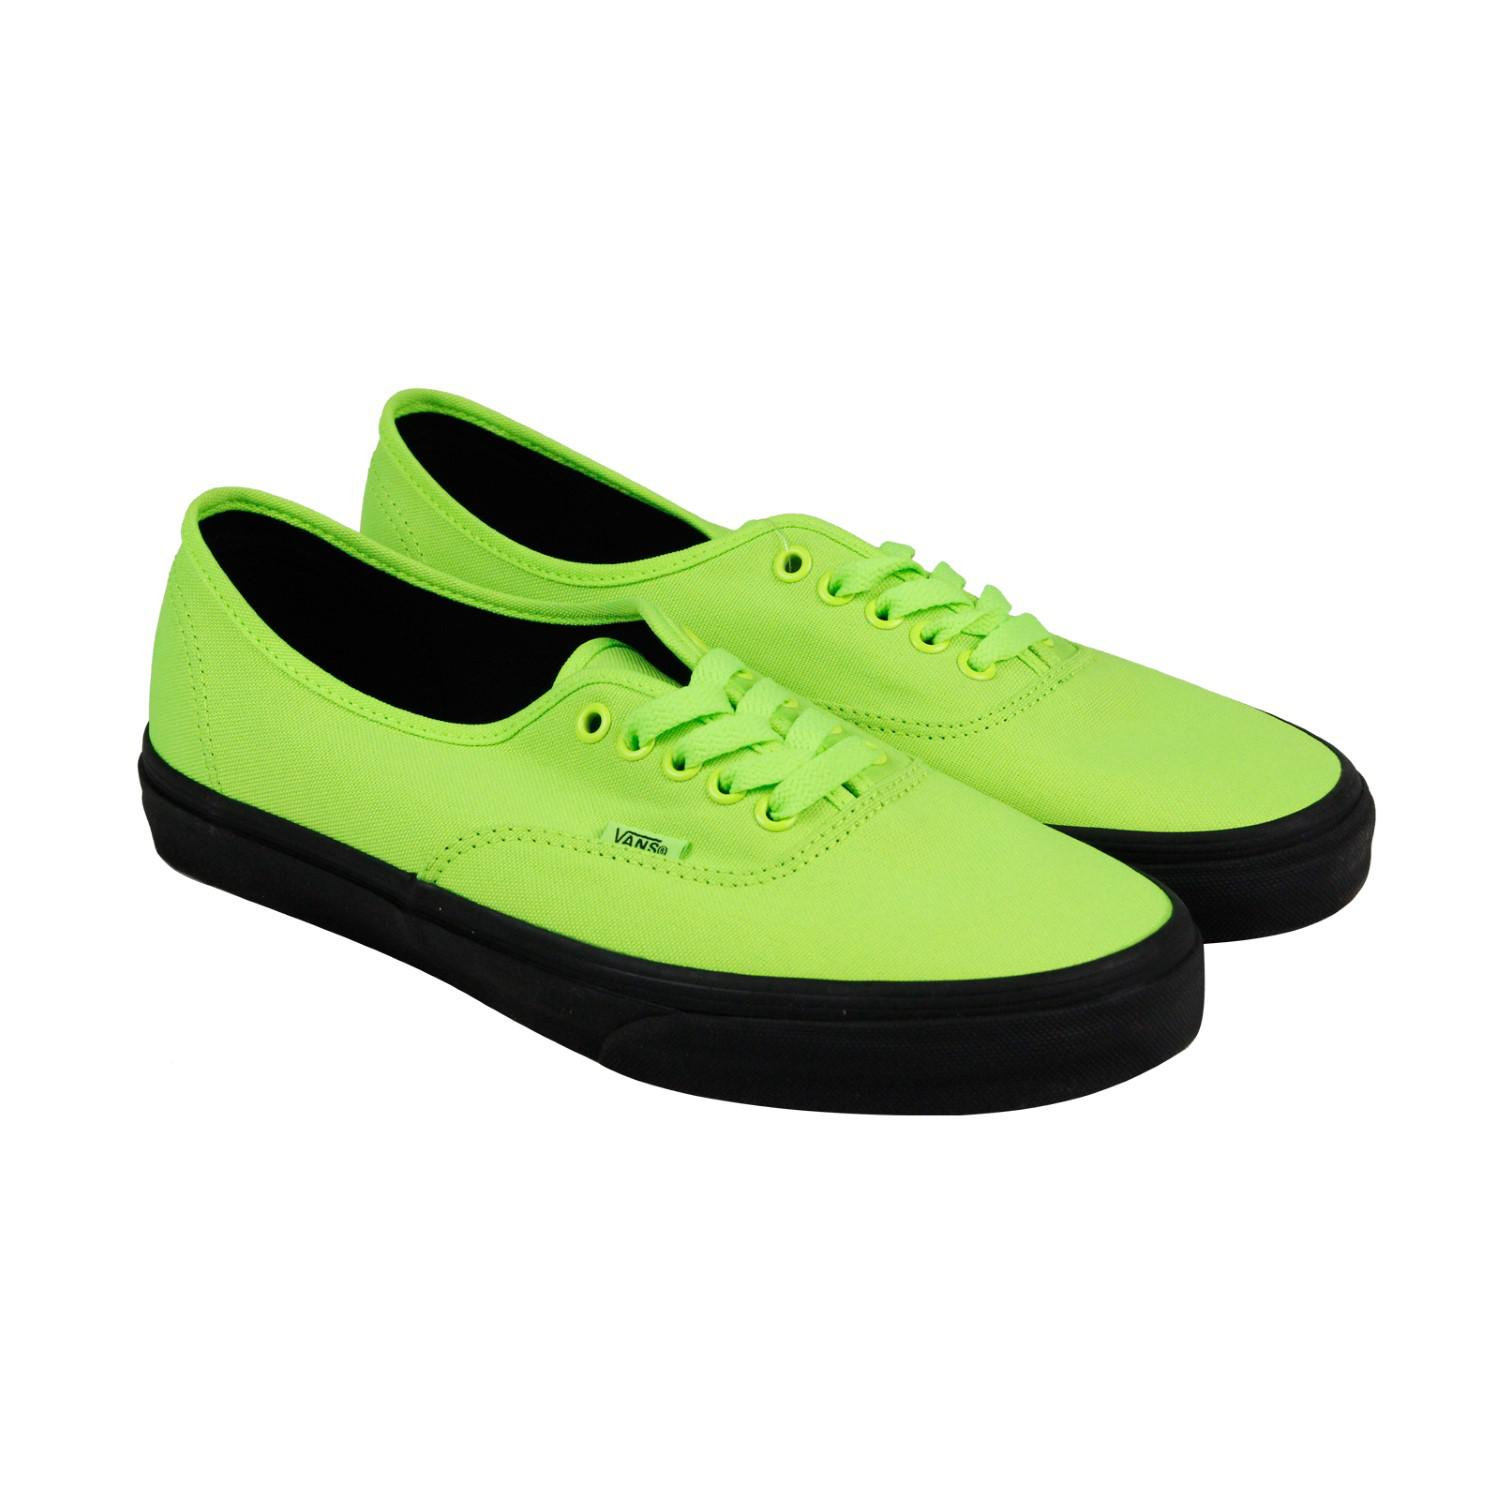 Lyst - Vans Authentic Neon Green Bk Mens Lace Up Sneakers in Green ... 99a2410dd